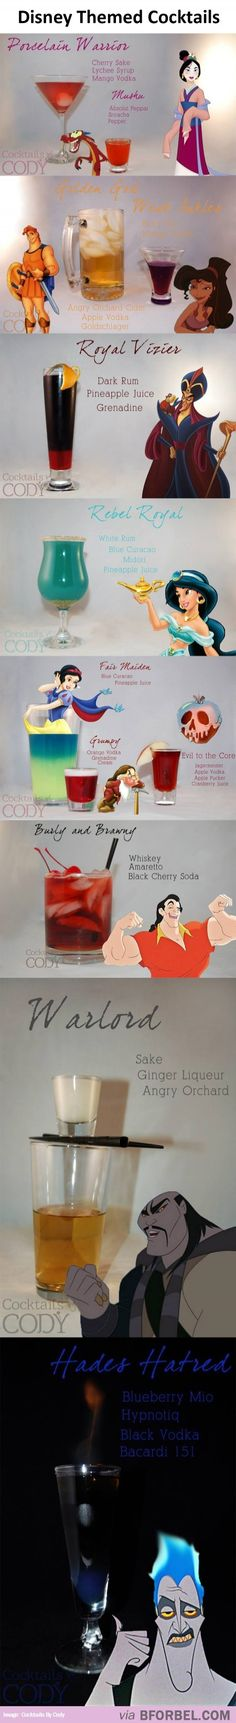 12 More Disney Themed Cocktails You'll Definitely Love… | B for Bel